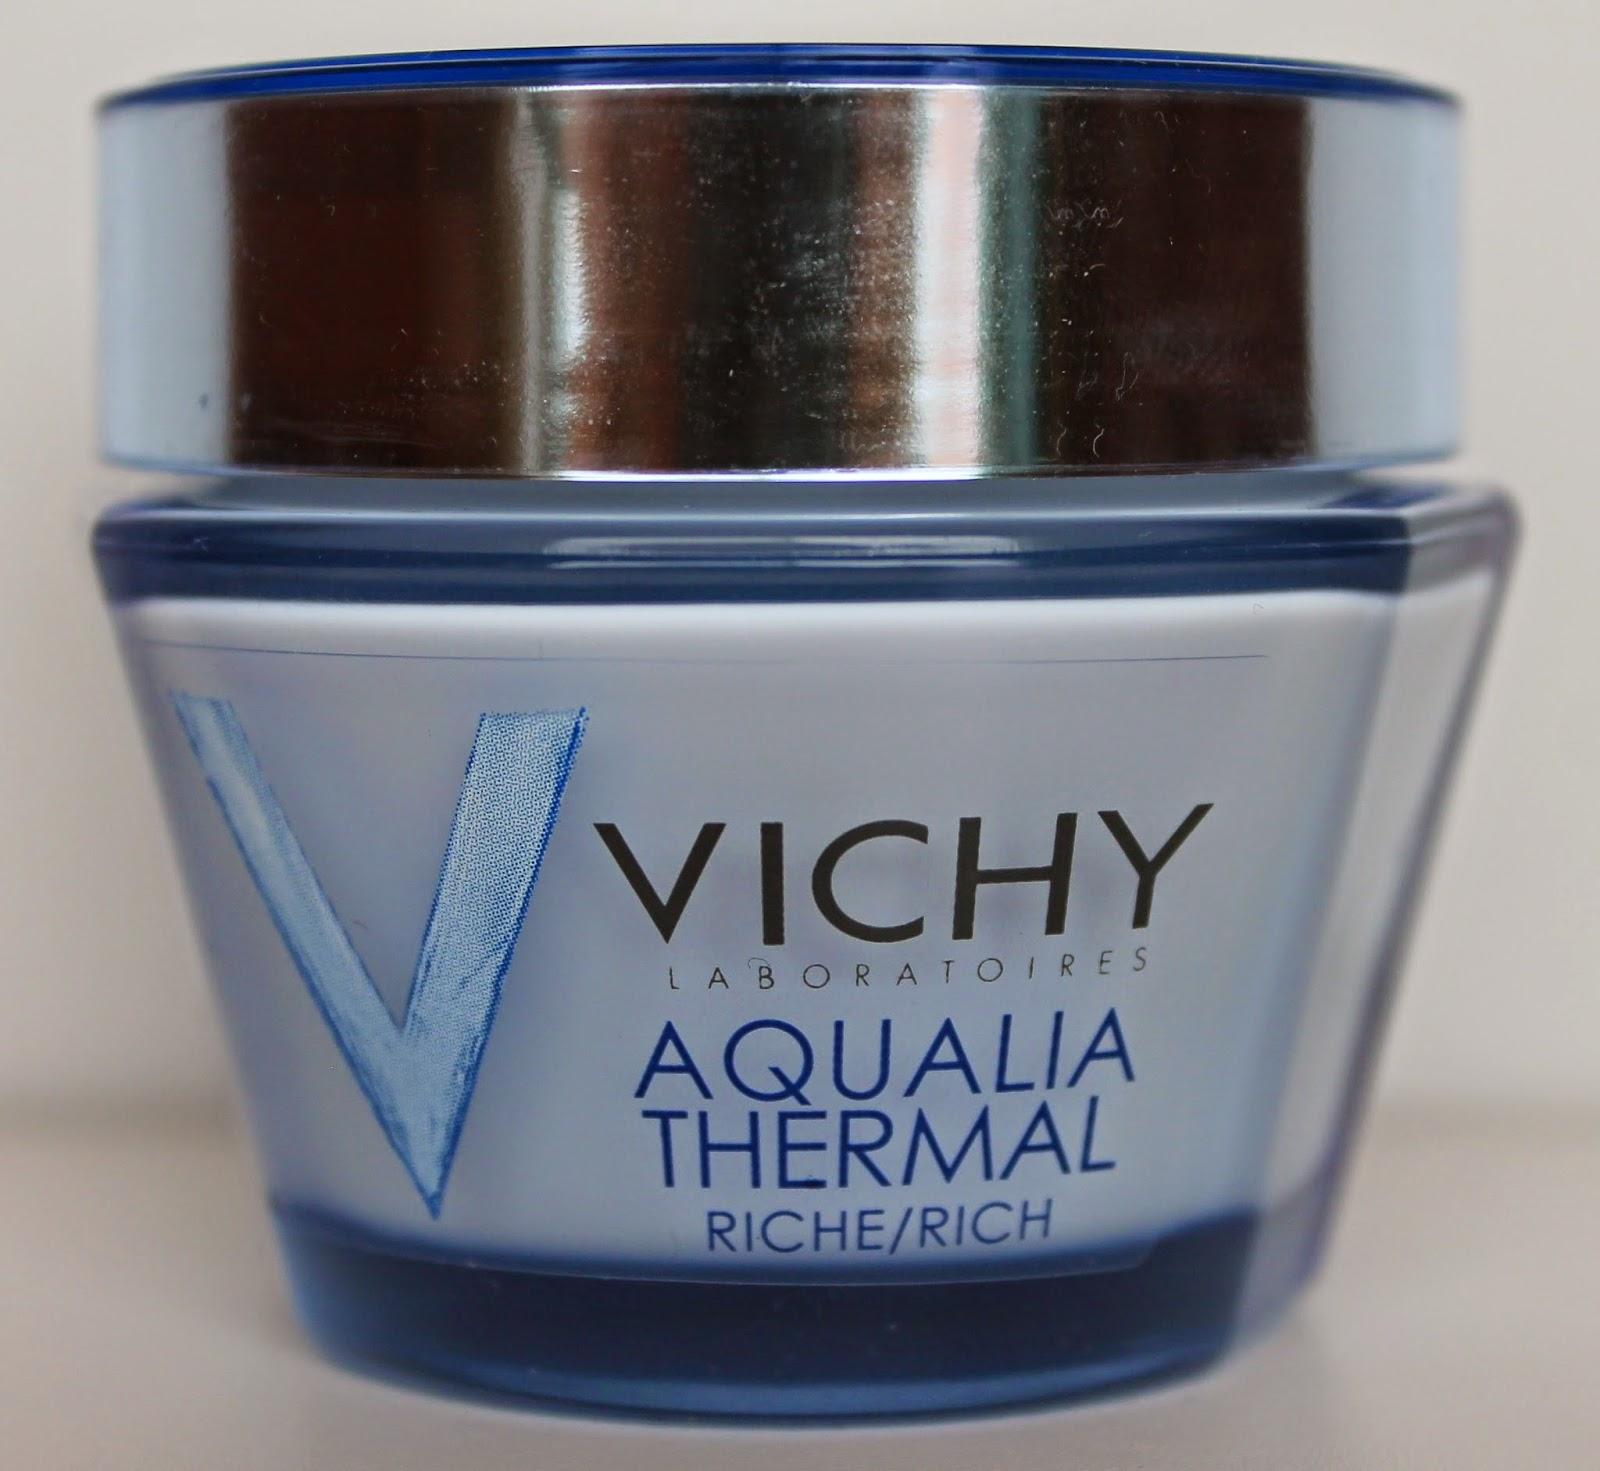 Vichy Aqua Thermal